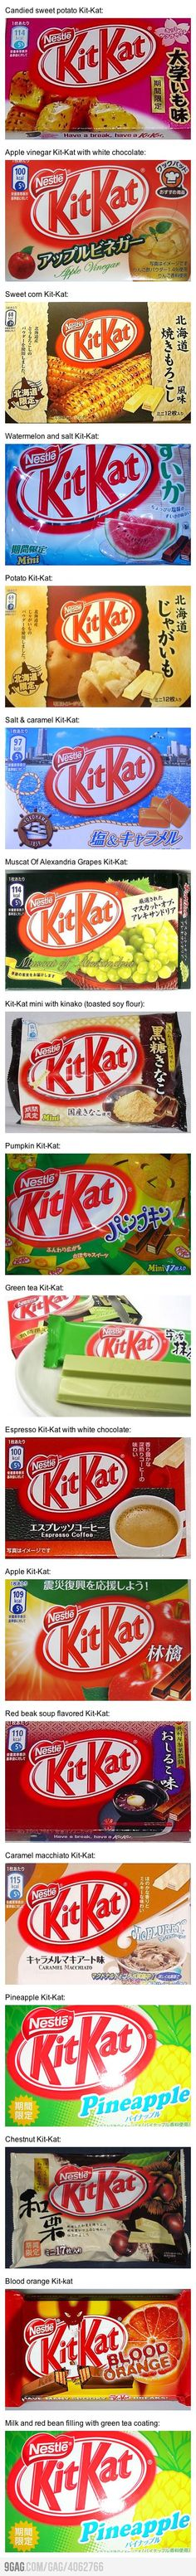 Yes, these are only some of the KitKat flavors you can expect to try in Japan.   Over-the-top creative and customer-centered product offering!